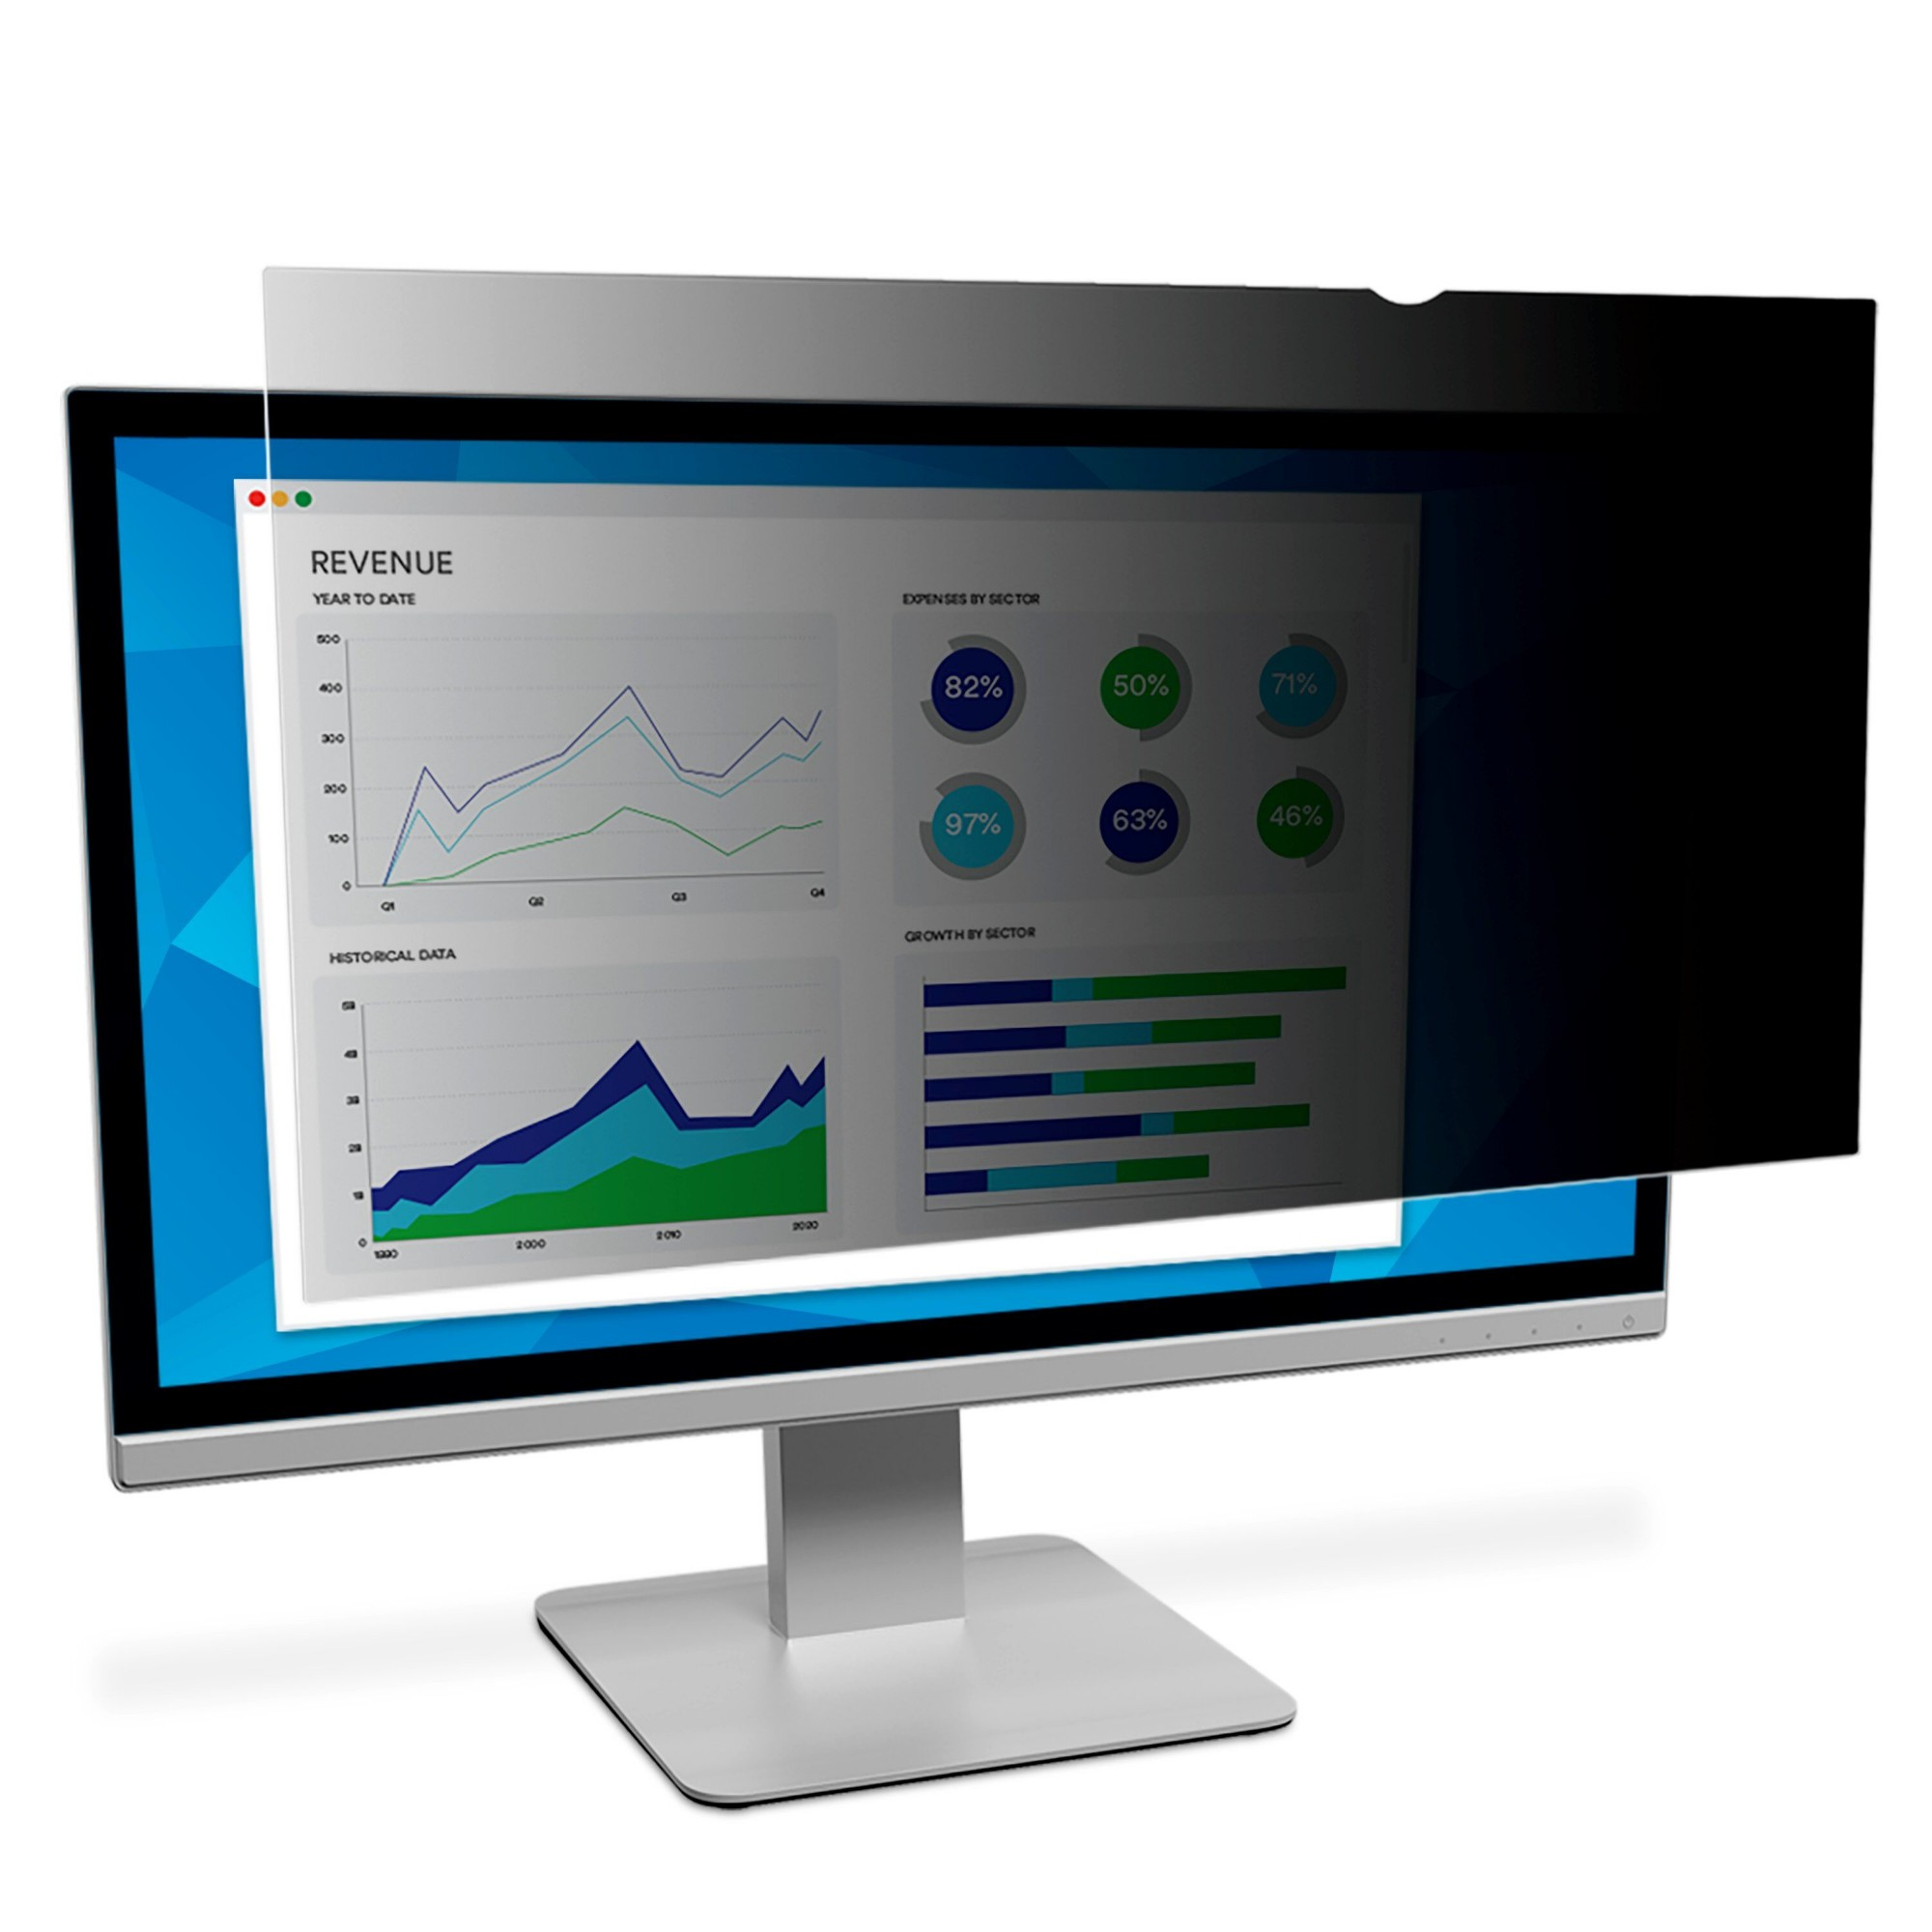 LCD Privacy Filter Pf28.0w 28in For Desktop Displays